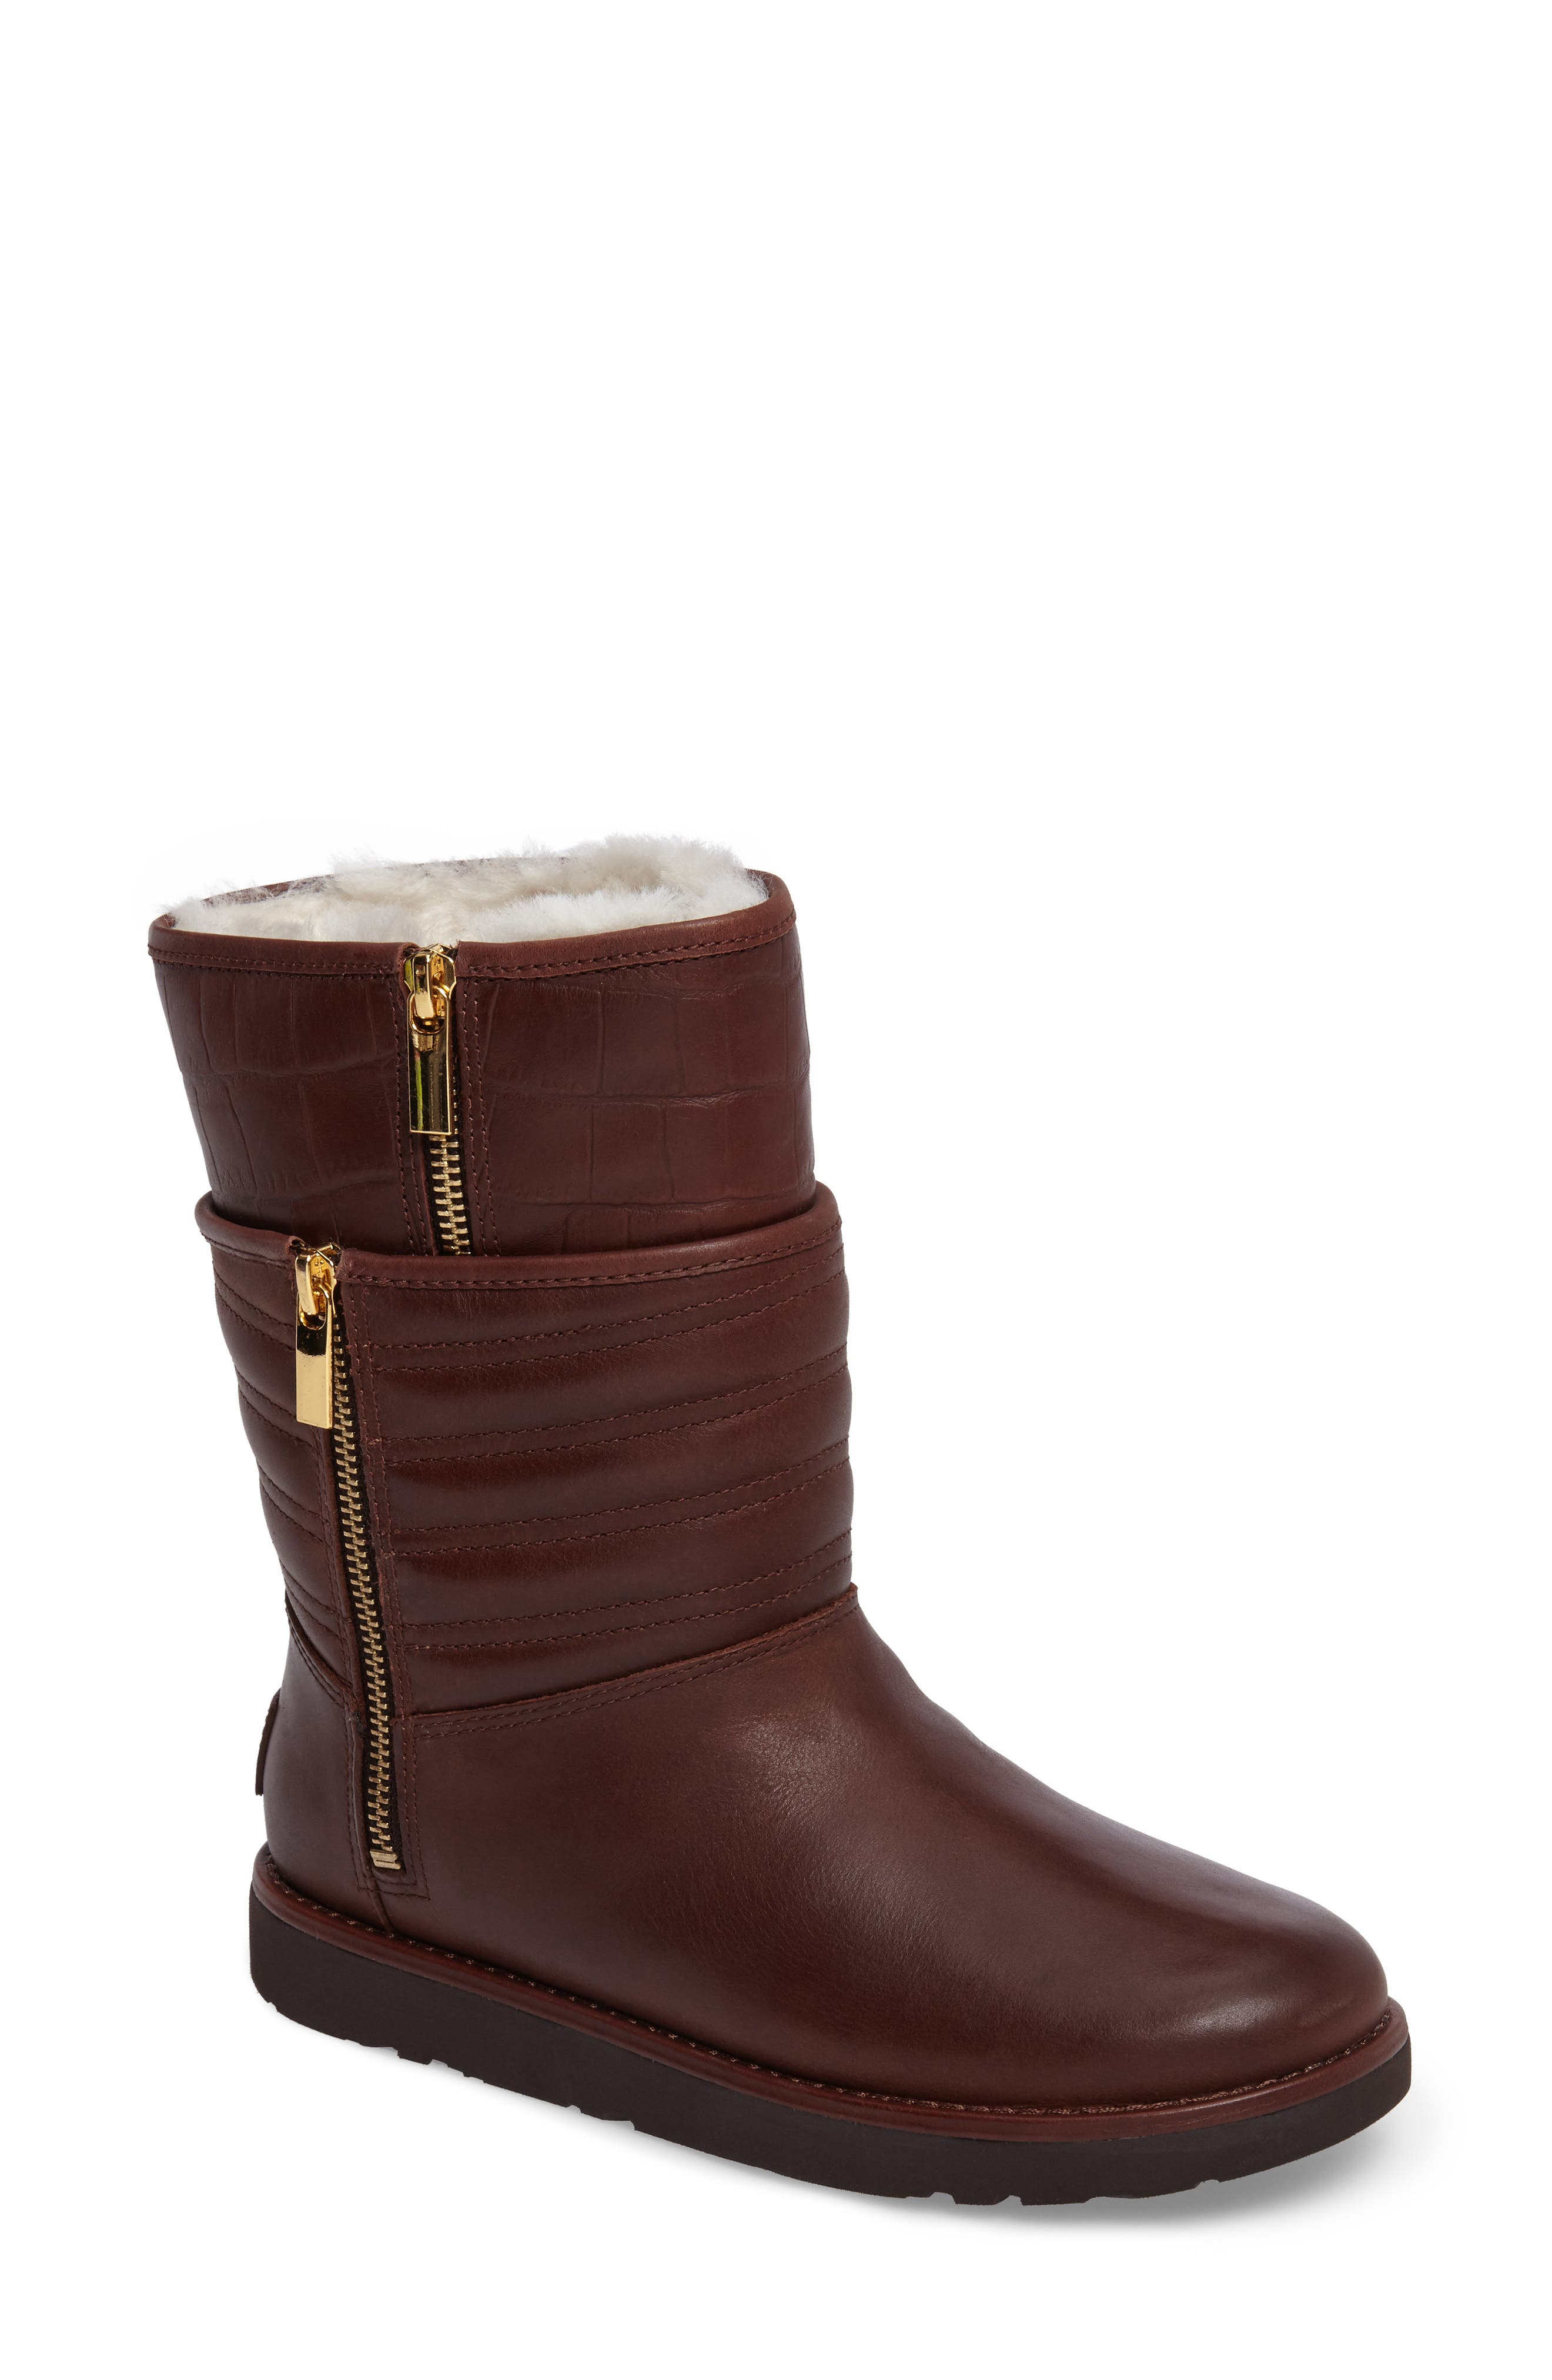 Alternate Image 1 Selected - UGG® Aviva Genuine Shearling Lined Boot (Women)